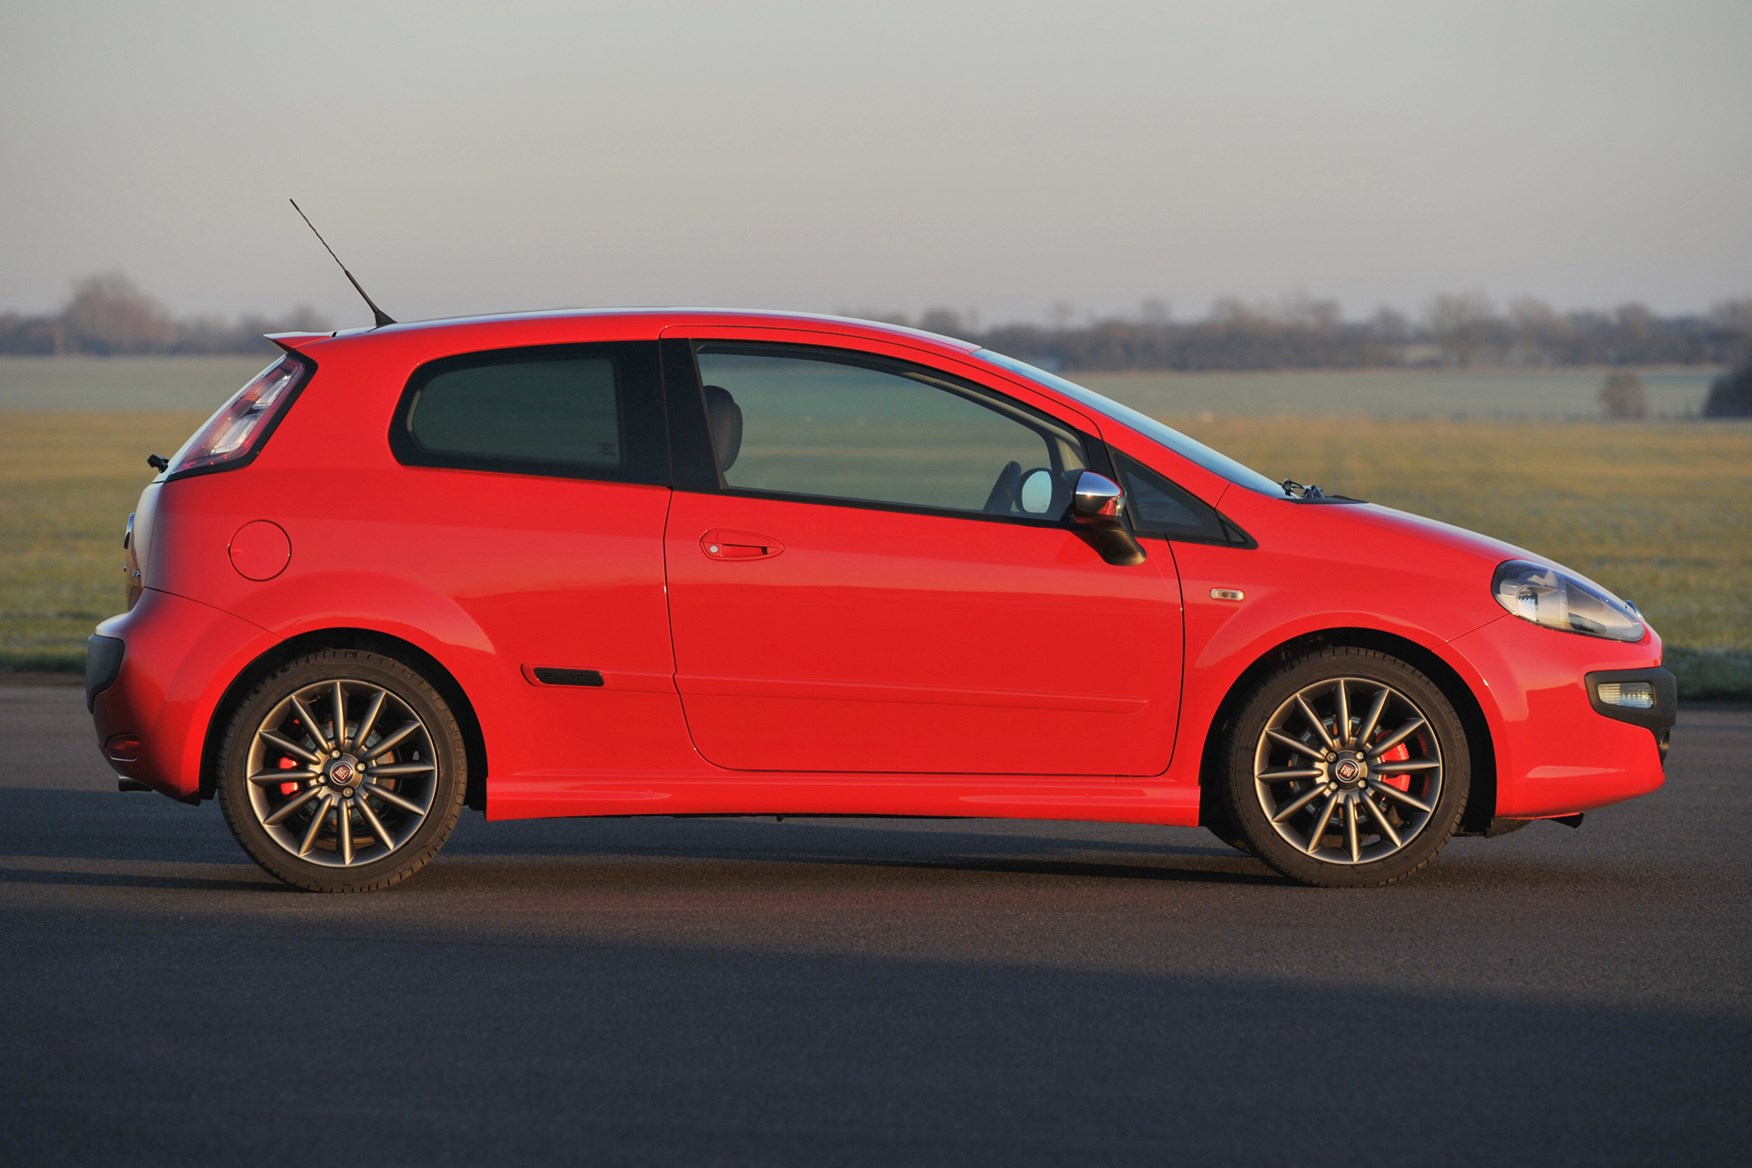 Office Paint Fiat Punto Evo Hatchback Review 2010 2012 Parkers